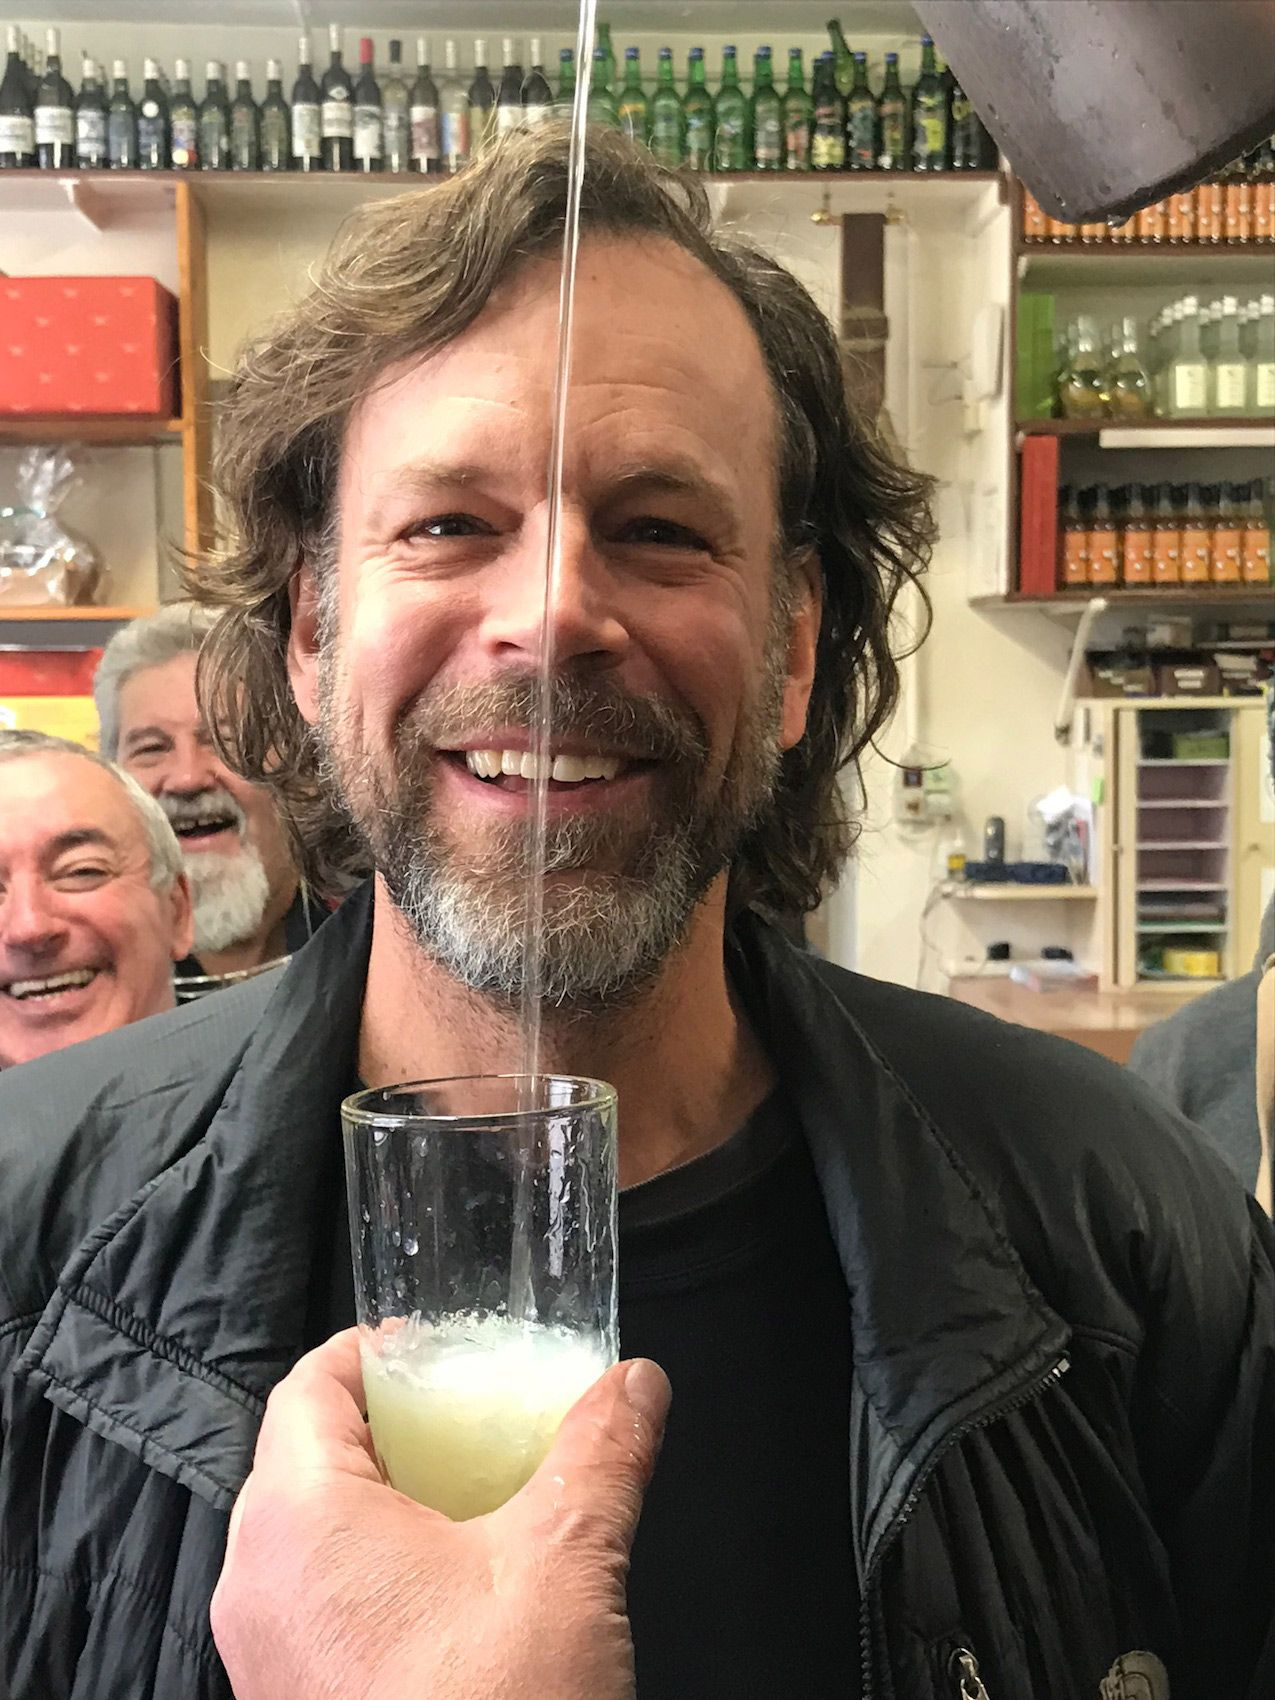 Lou Bopp In Front of an Absinthe Pour